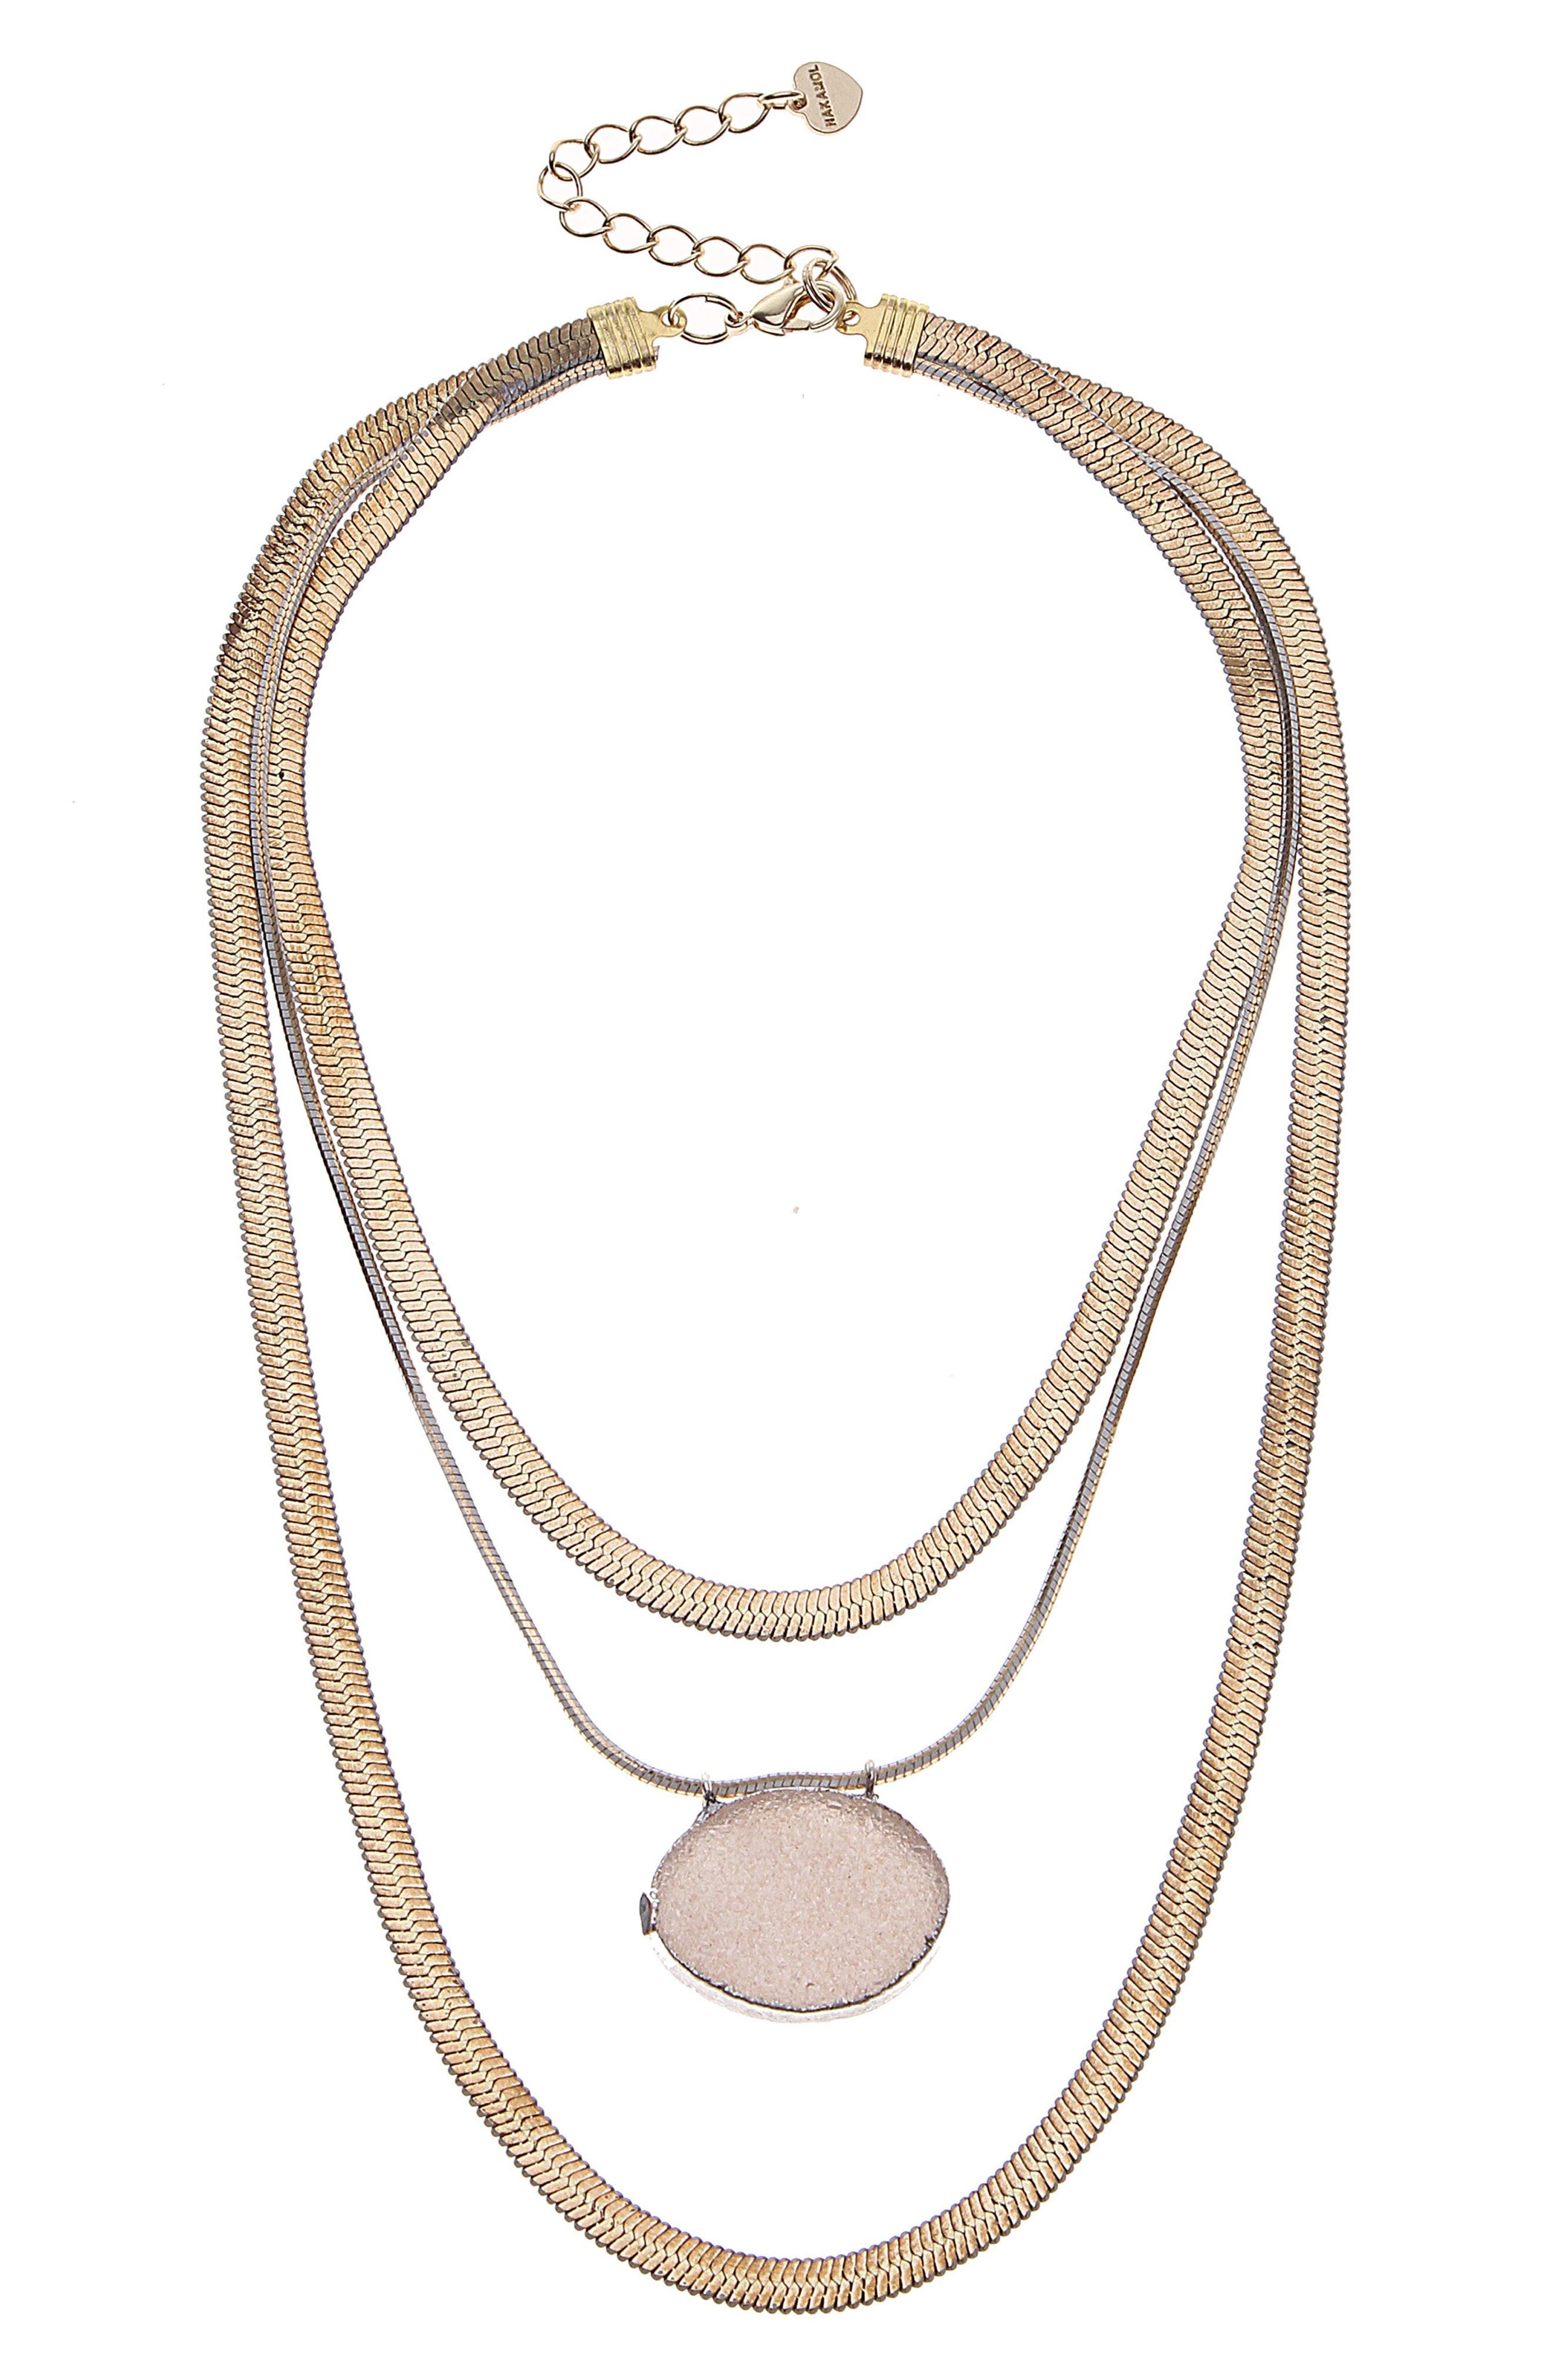 Layered Snake Chain & Drusy Pendant Necklace,                             Main thumbnail 1, color,                             Gold